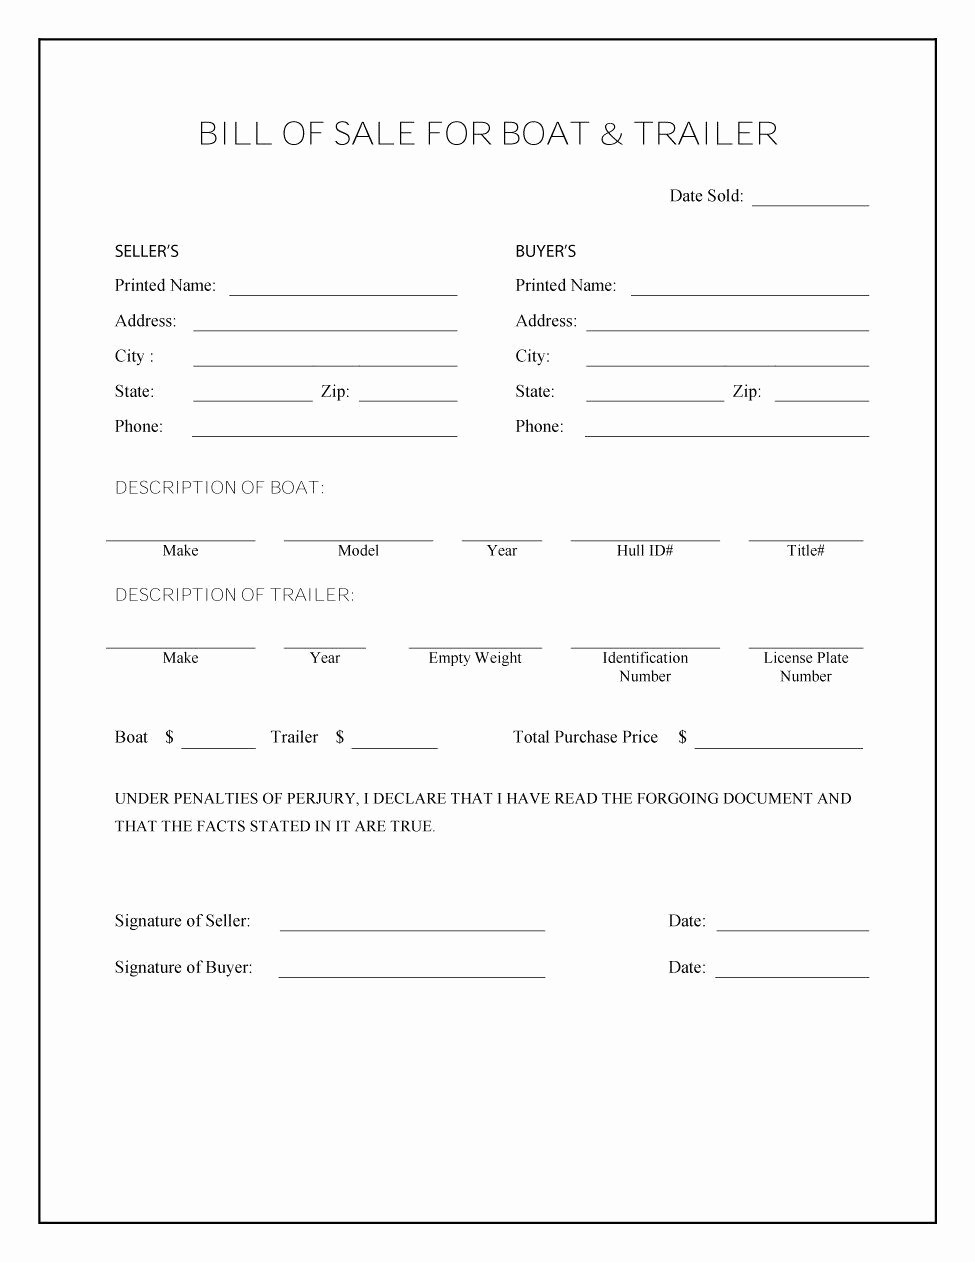 Bill Of Sale form Template New 45 Fee Printable Bill Of Sale Templates Car Boat Gun